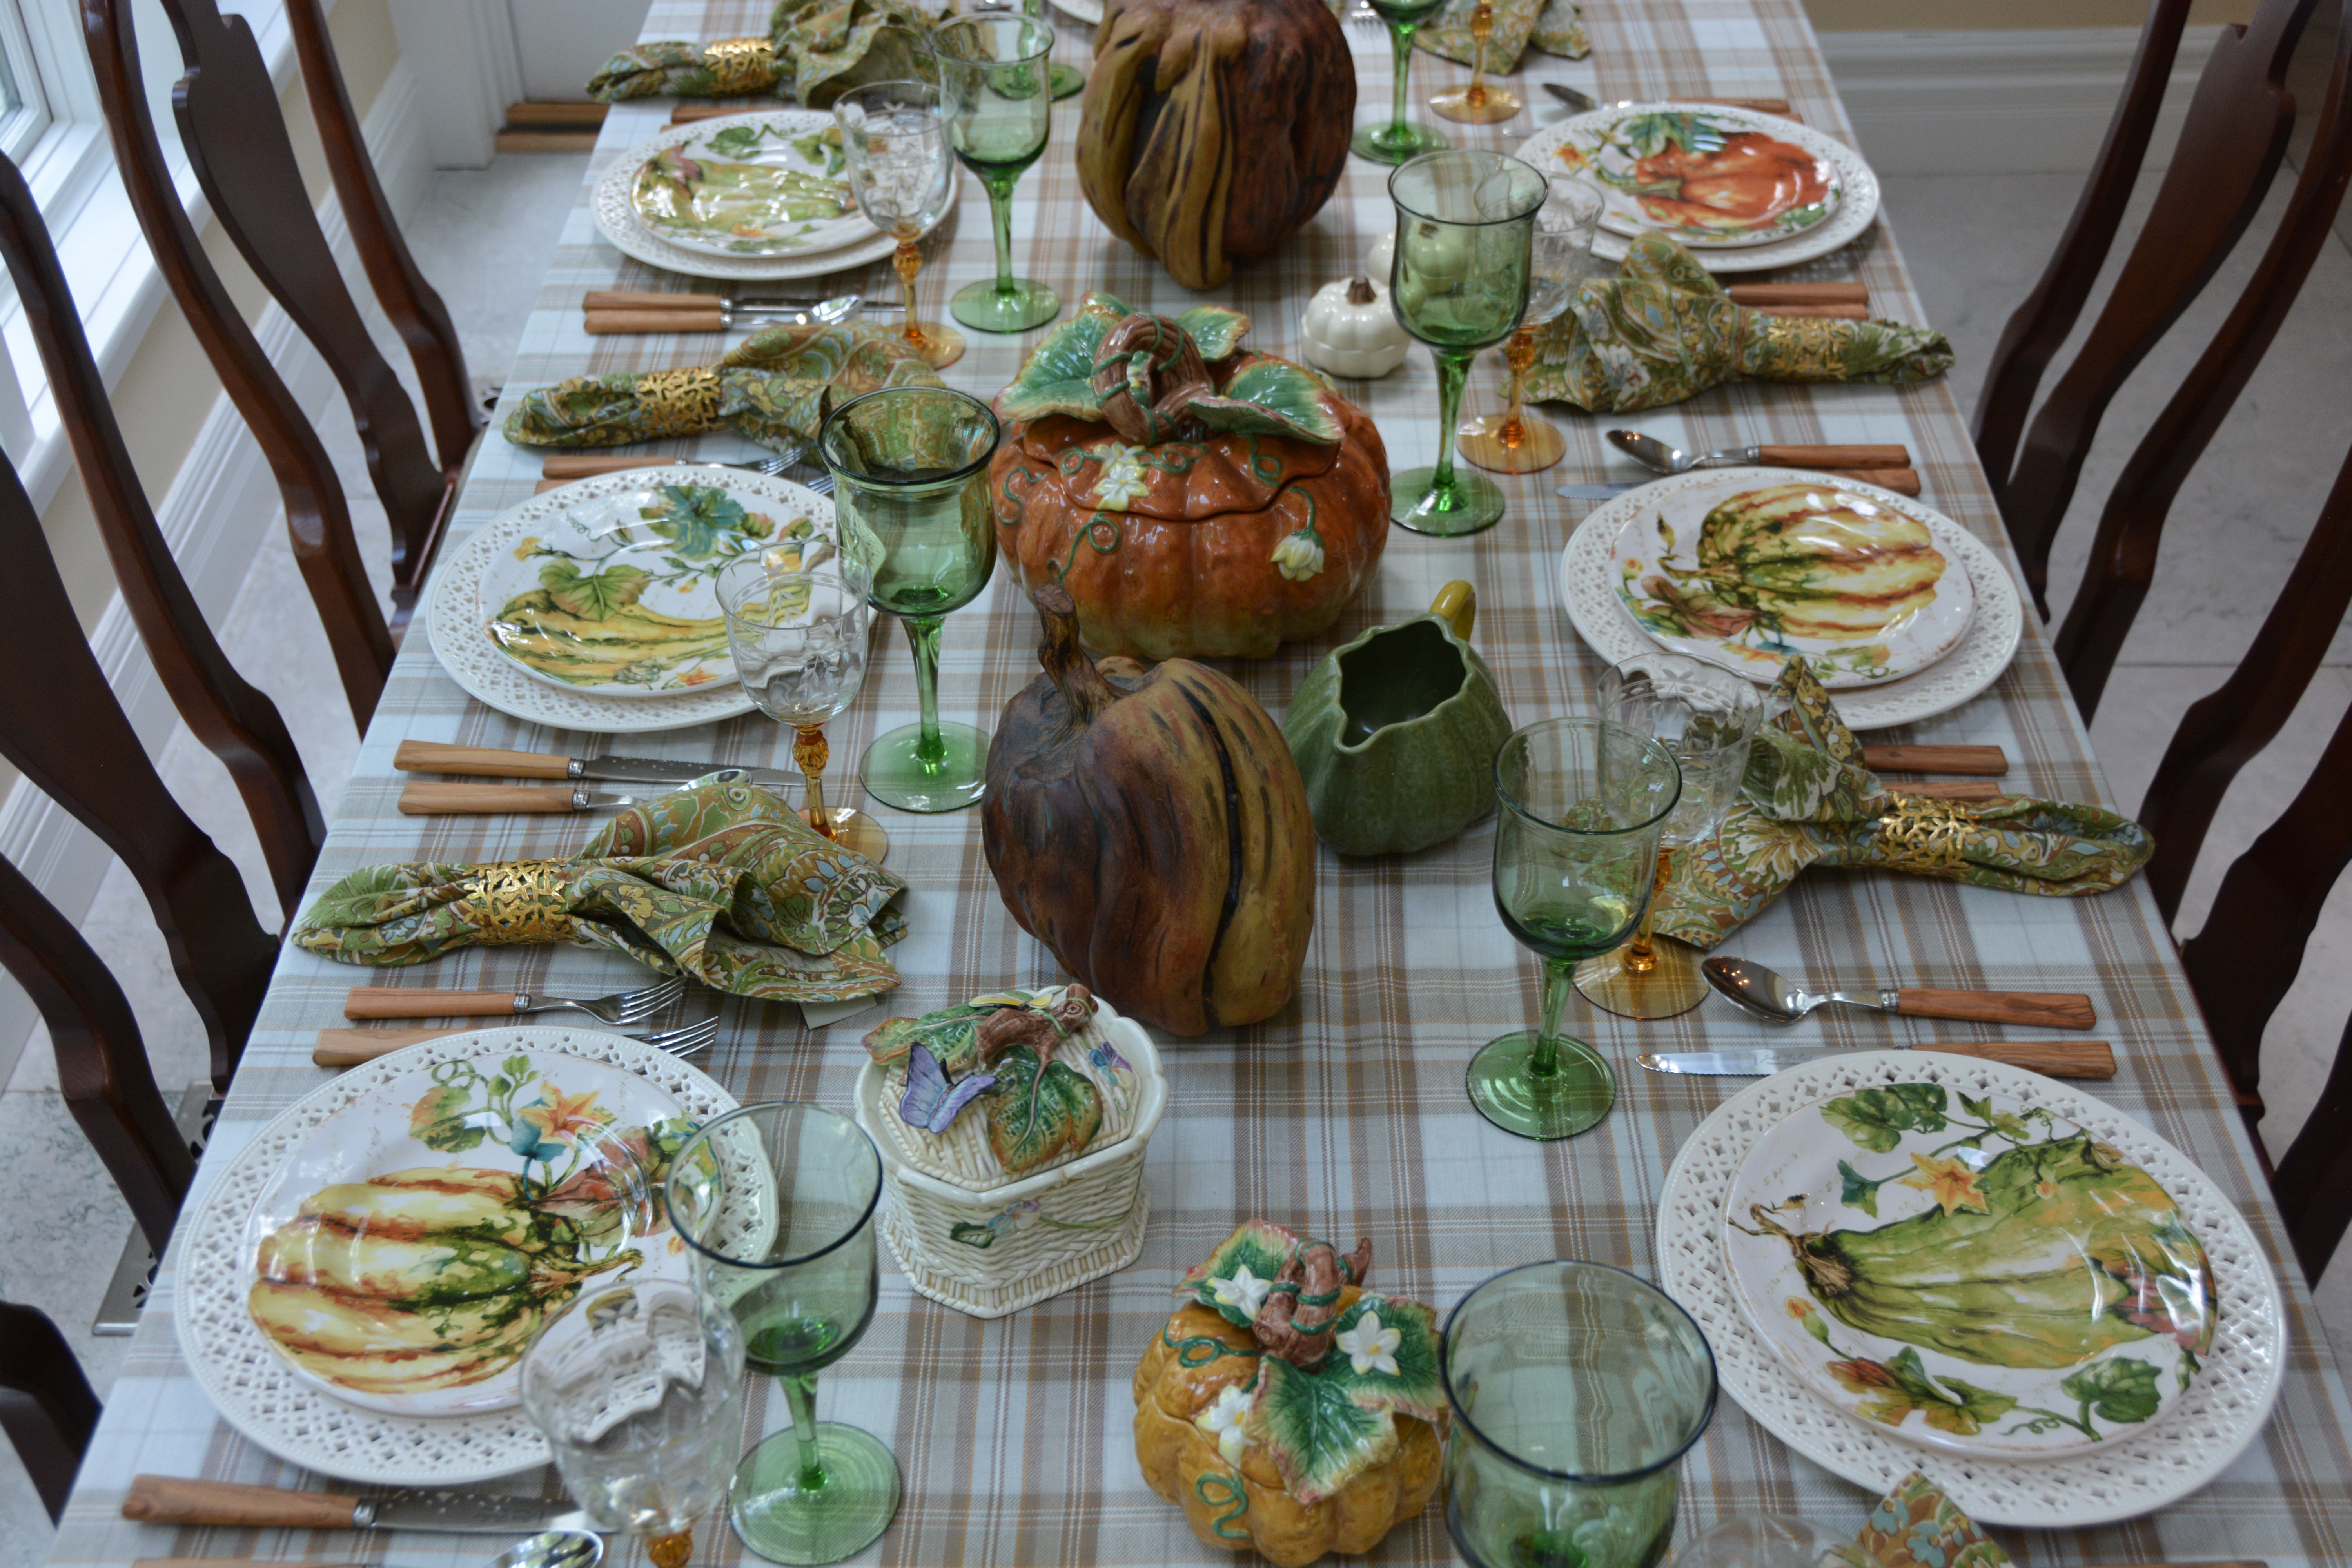 The Tablecloth Is A HomeSense (HomeGoods In The US) Purchase, And Its Warm  Neutral Tones Of Brown, Grey And Cream Served As A Coordinating Base For  The ...